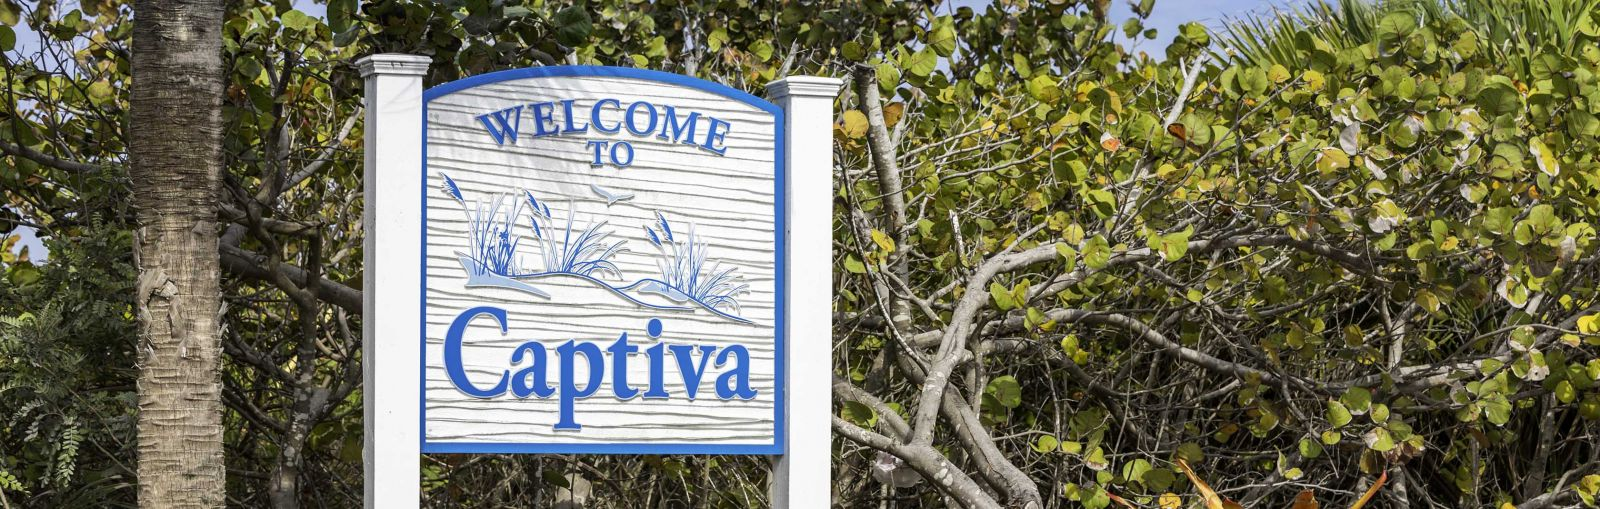 Welcome to Captiva Sign